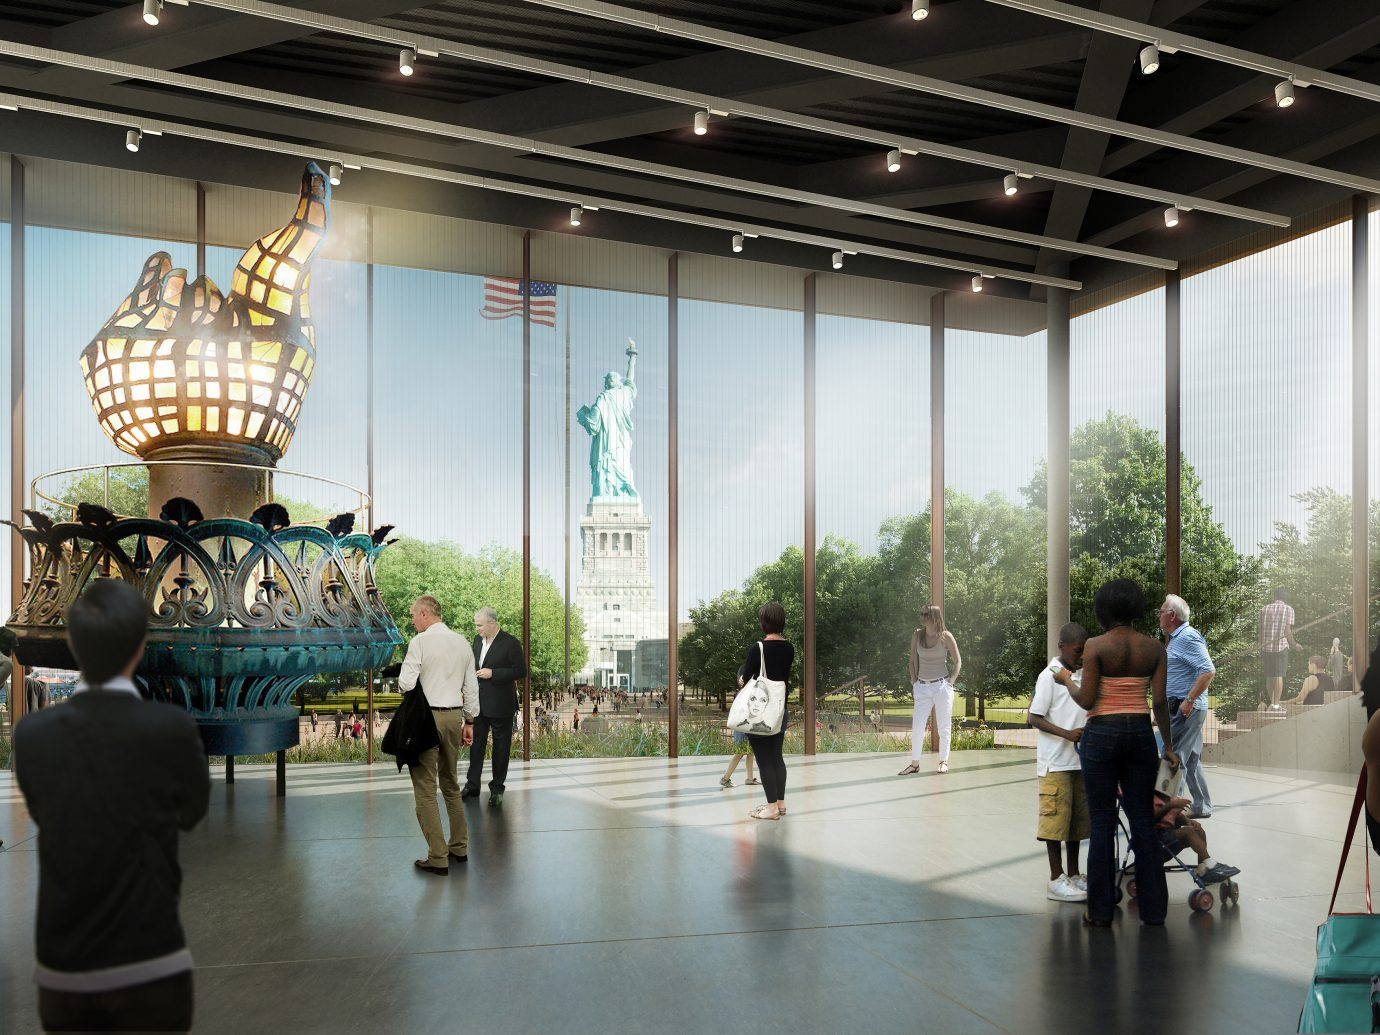 rendering of interior of Statue of Liberty Museum with view of statue